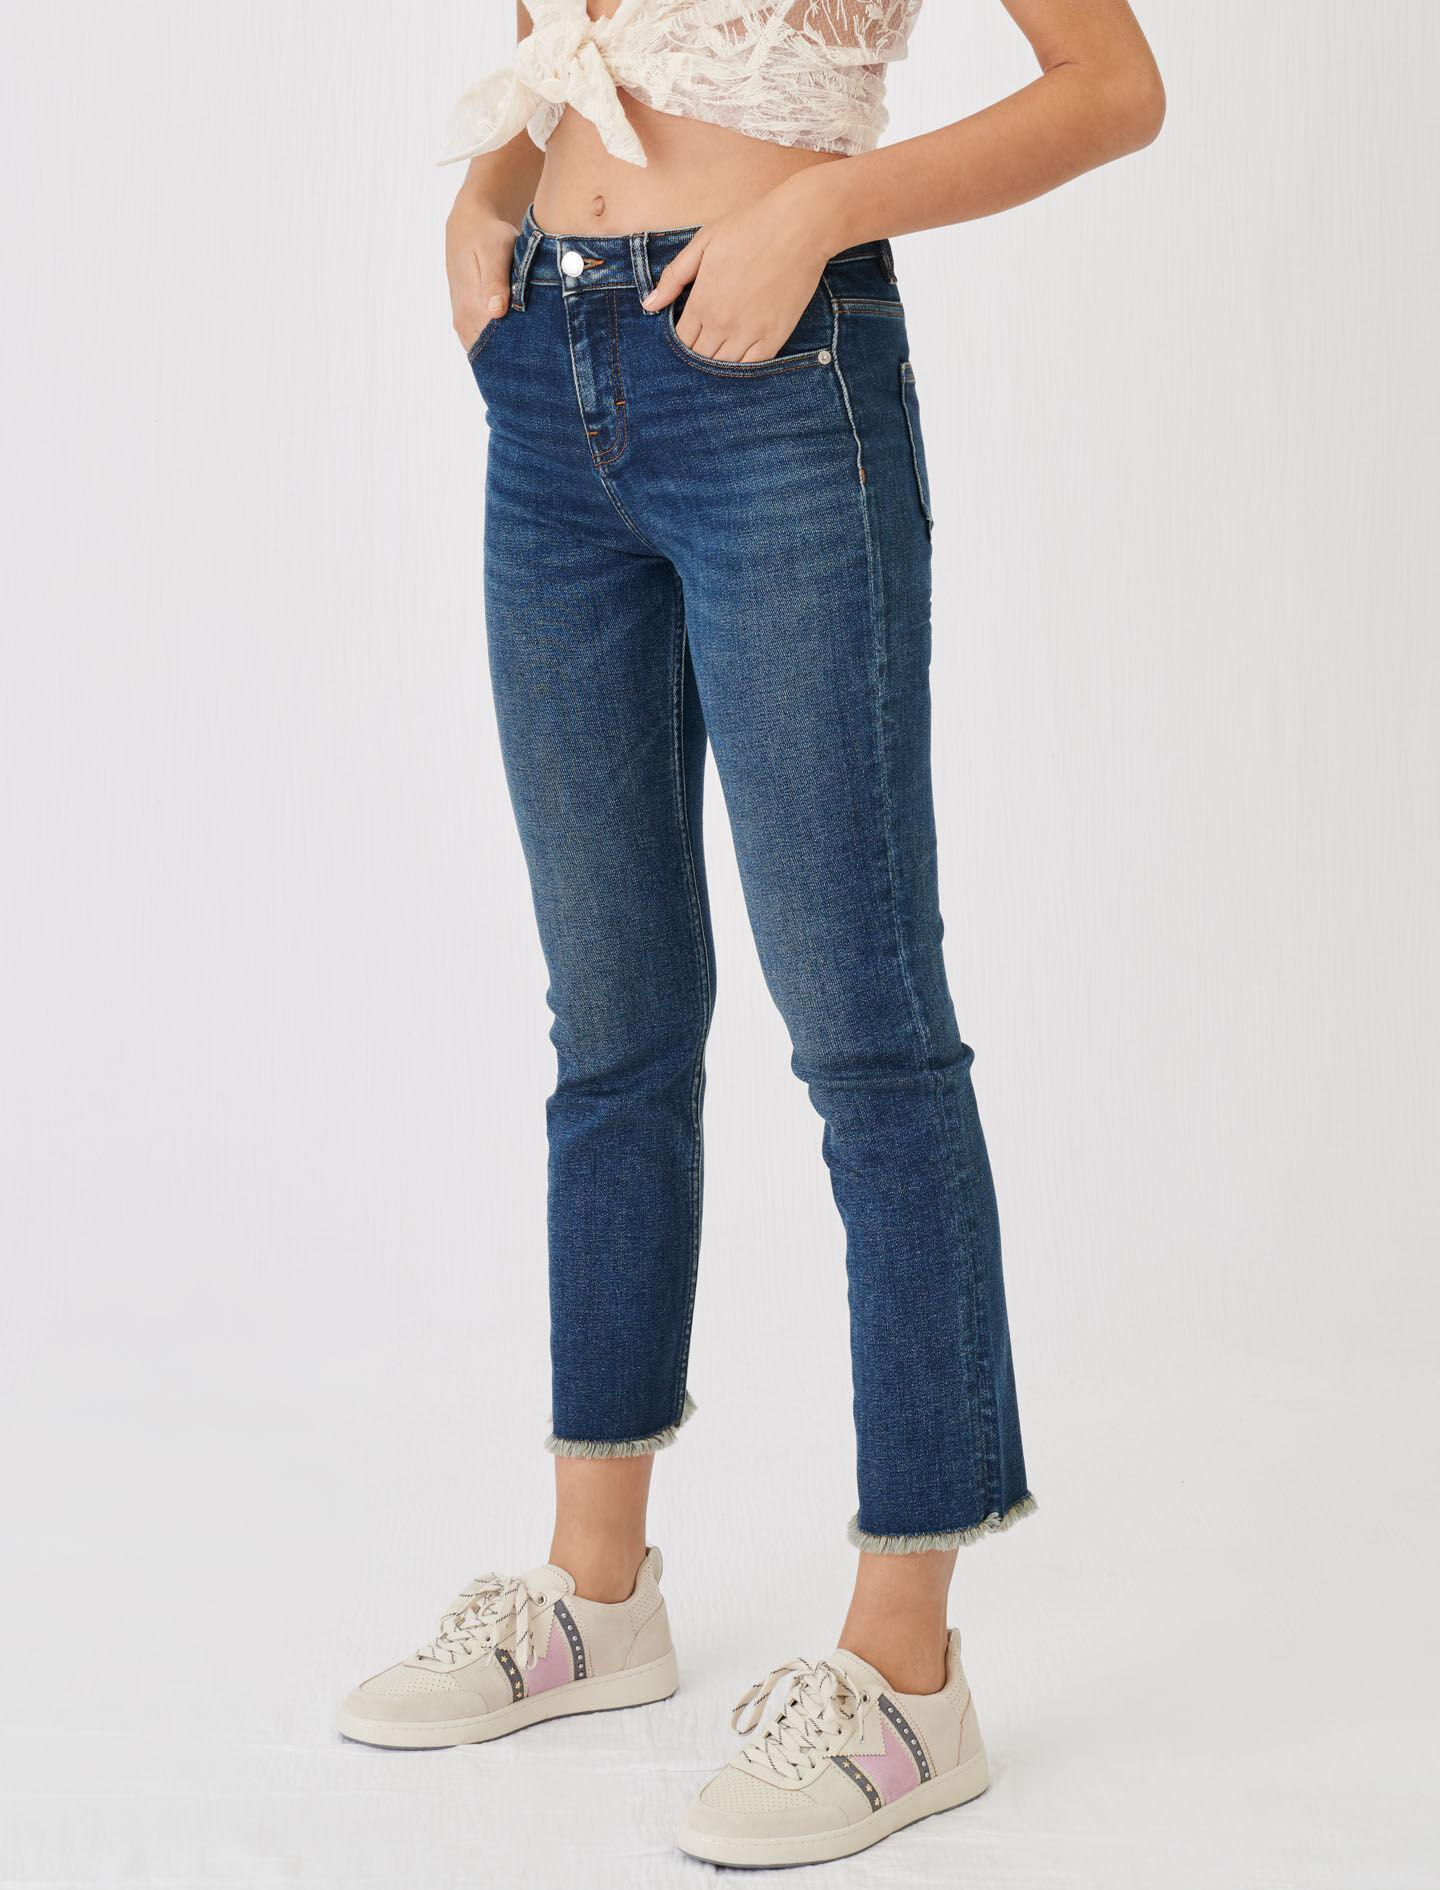 STRAIGHT CUT JEANS WITH FRINGING 4